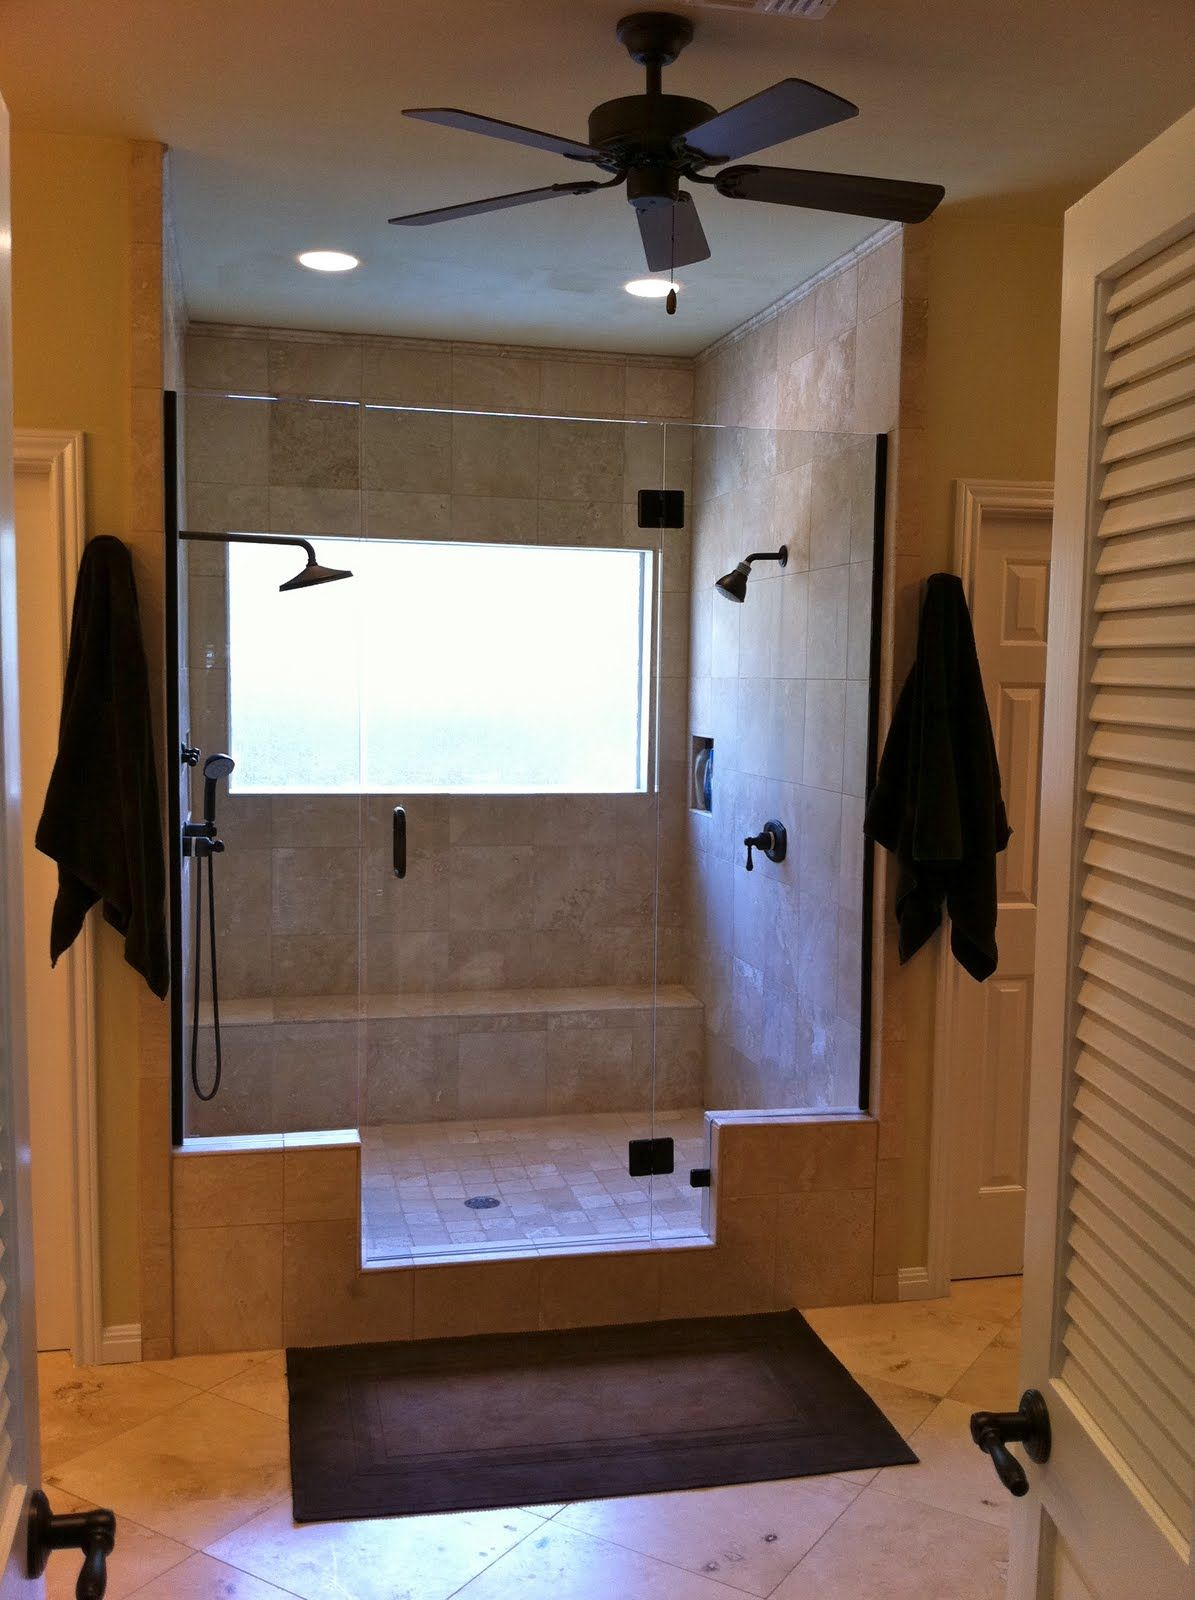 Small Bathroom No Shower Door master bathroom redo | small master bathroom remodeling ideas